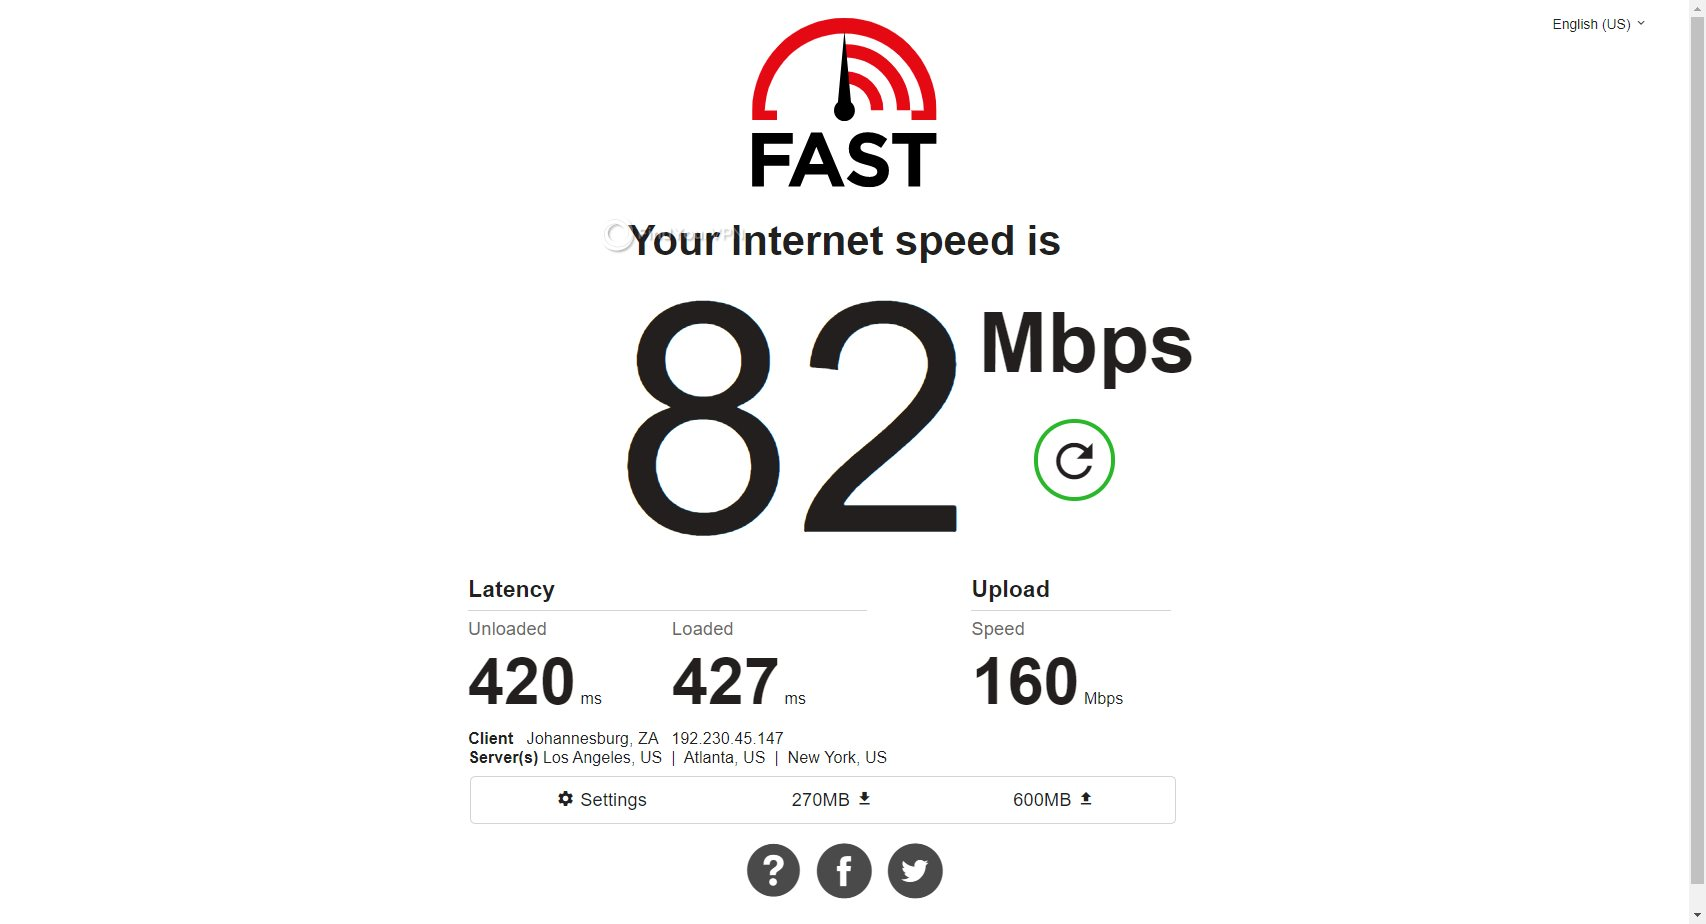 South Africa Mullvad speed test